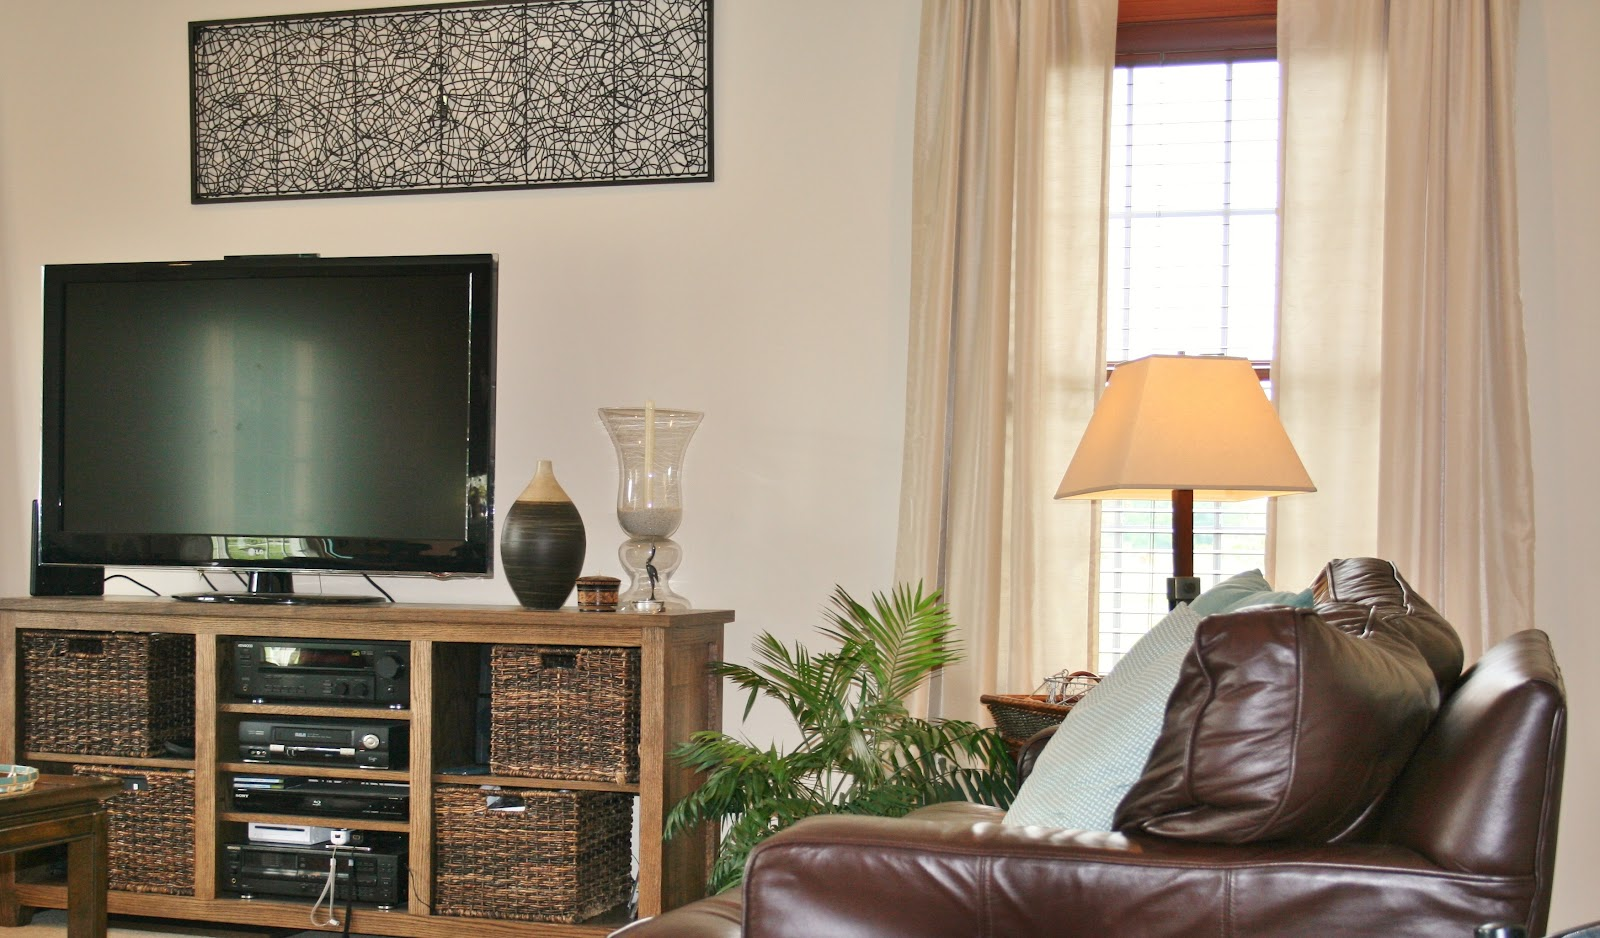 I Love My Art Work Hanging Above The Tv Think It Adds A Little Funky Touch To Decorating